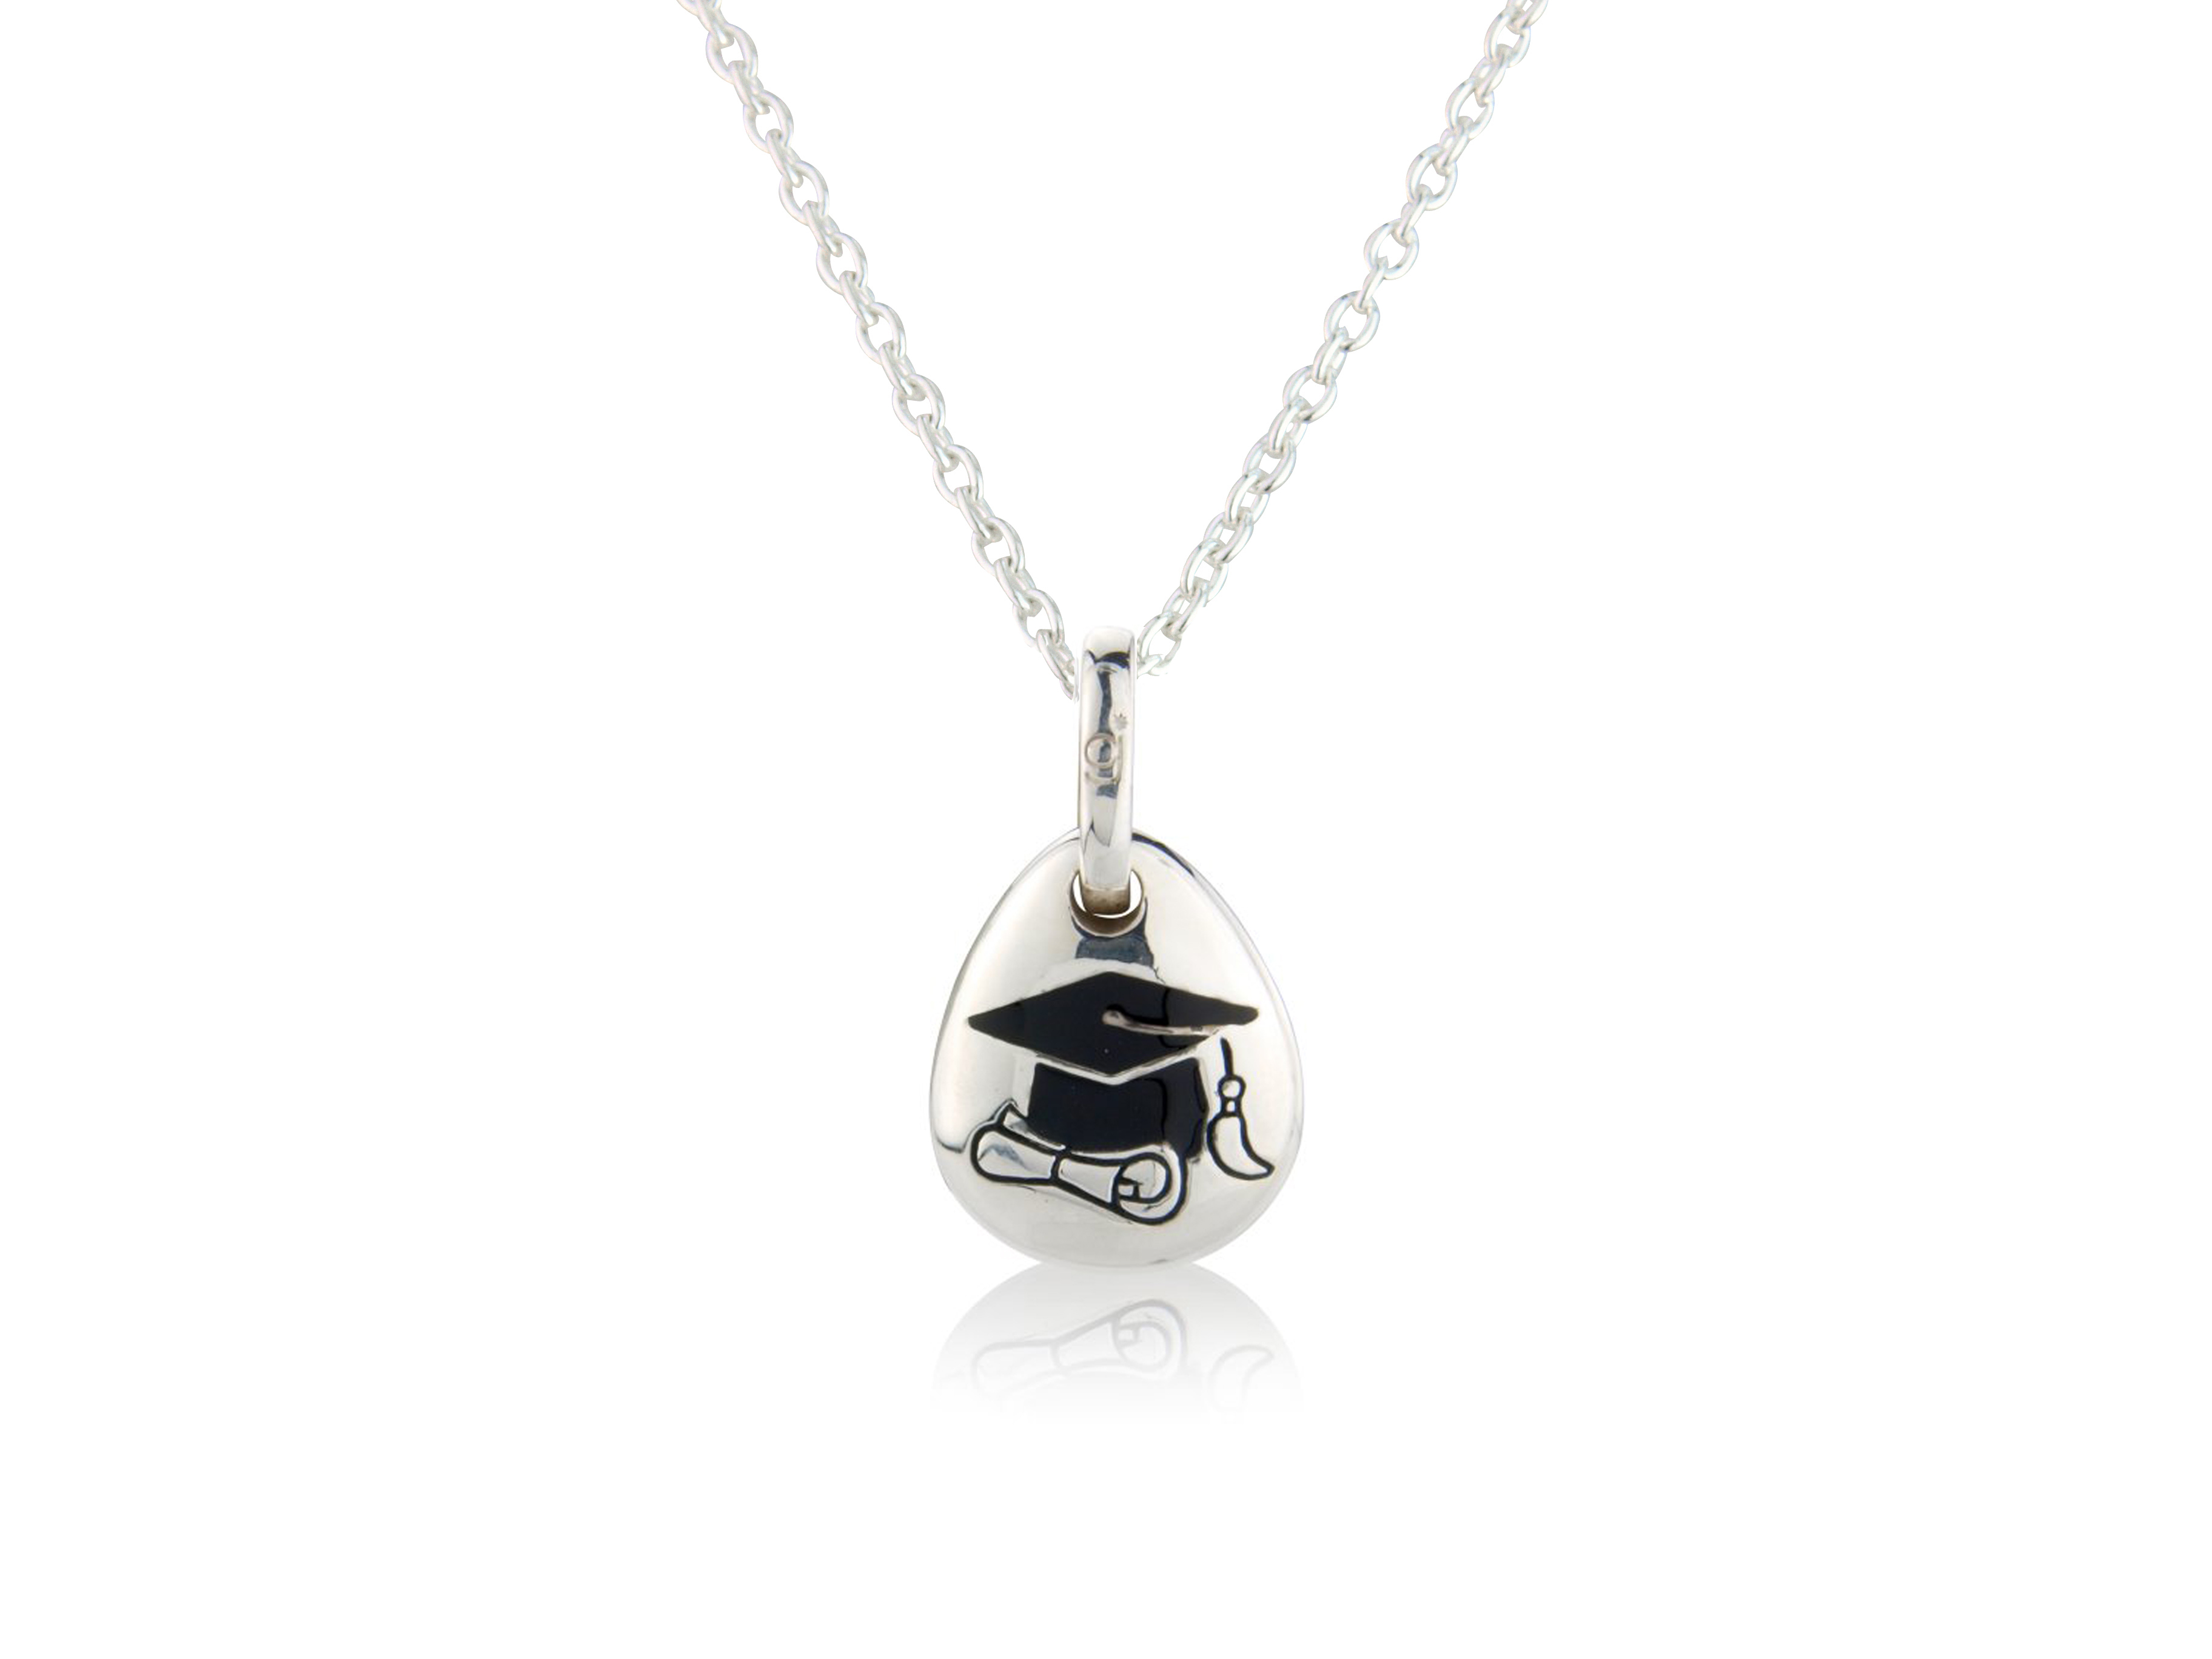 Graduation Pebble Pendant